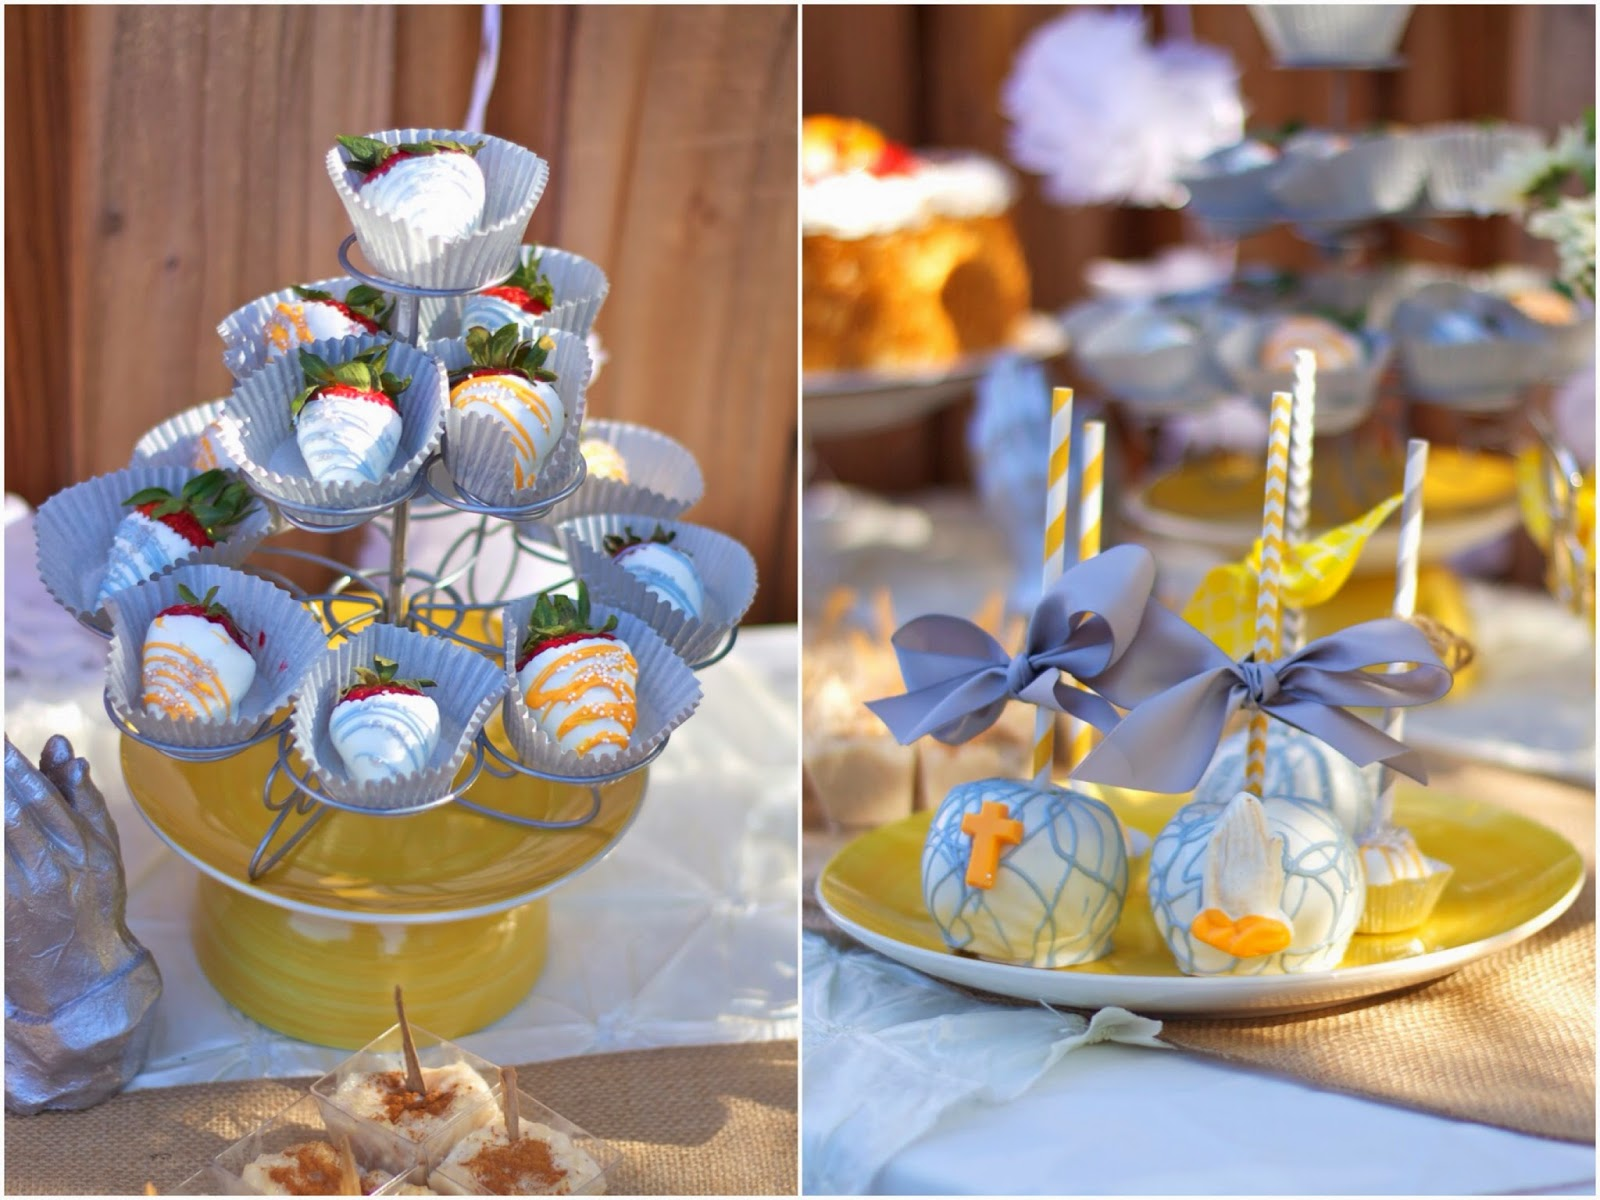 Themed chocolate covered strawberries, first communion candied apples, decorated candied apples, yellow and gray candied apples, yellow and gray chocolate covered strawberries